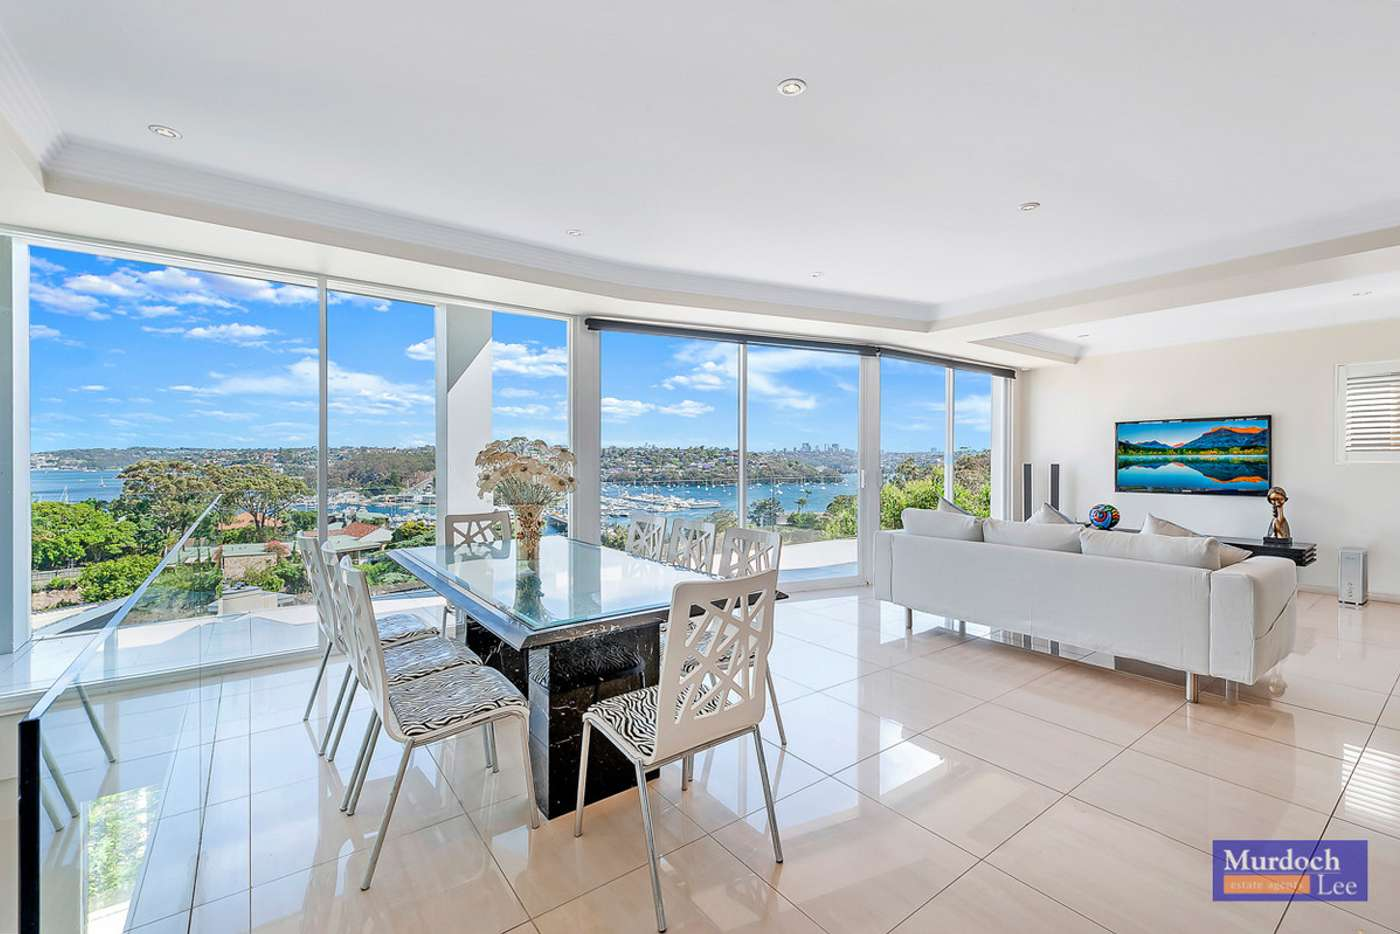 Main view of Homely house listing, 2C Edgecliffe Esplanade, Seaforth NSW 2092